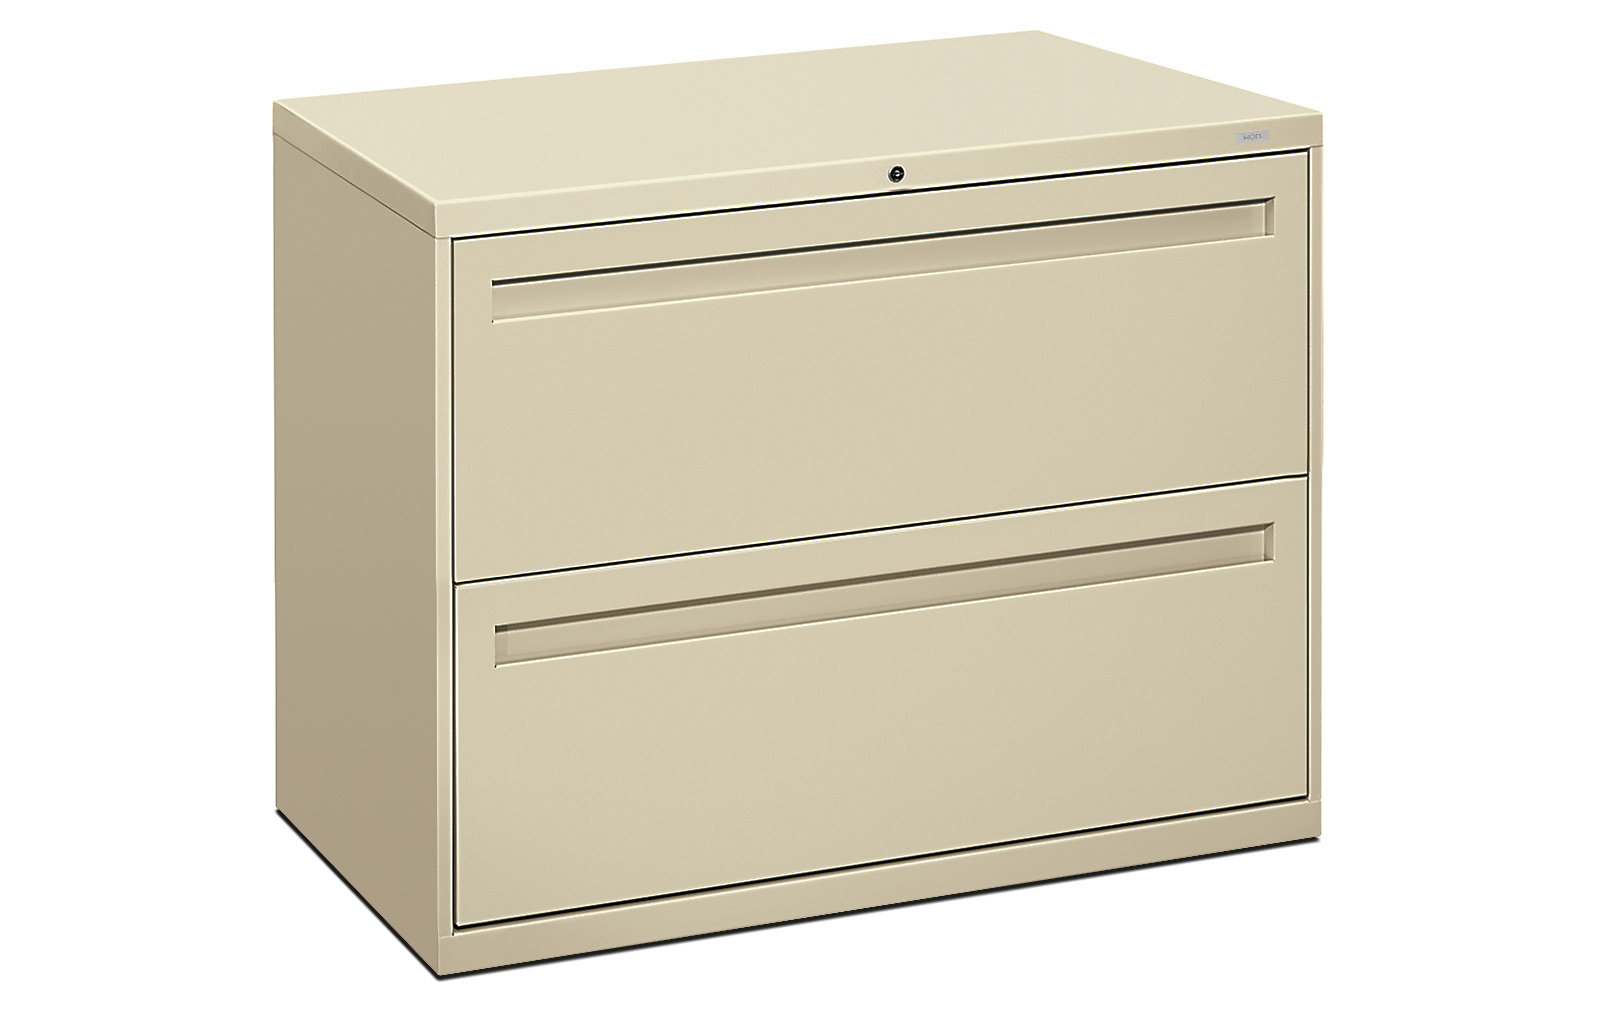 replacement locking glamorous stores size parts workstation locks filing depot hon rails drawer of vertical dealers file oak office letter contemporary full sauder installation kit desk lateral cabinet cabinets steelcase series furniture herman lock wood global